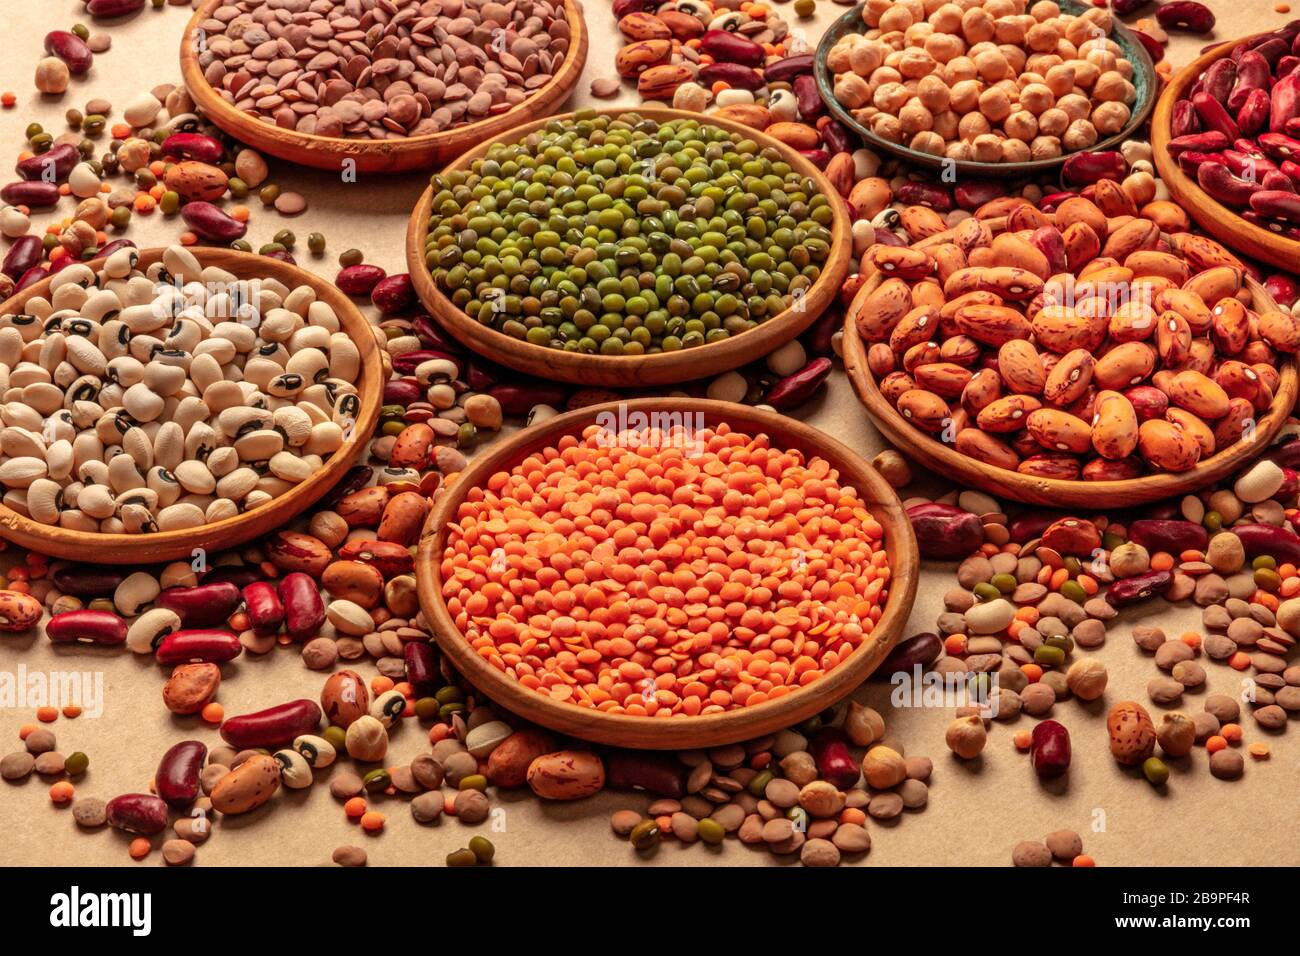 Legumes Assortment On A Brown Background Lentils Soybeans Chickpeas Red Kidney Beans A Vatiety Of Pulses Stock Photo Alamy